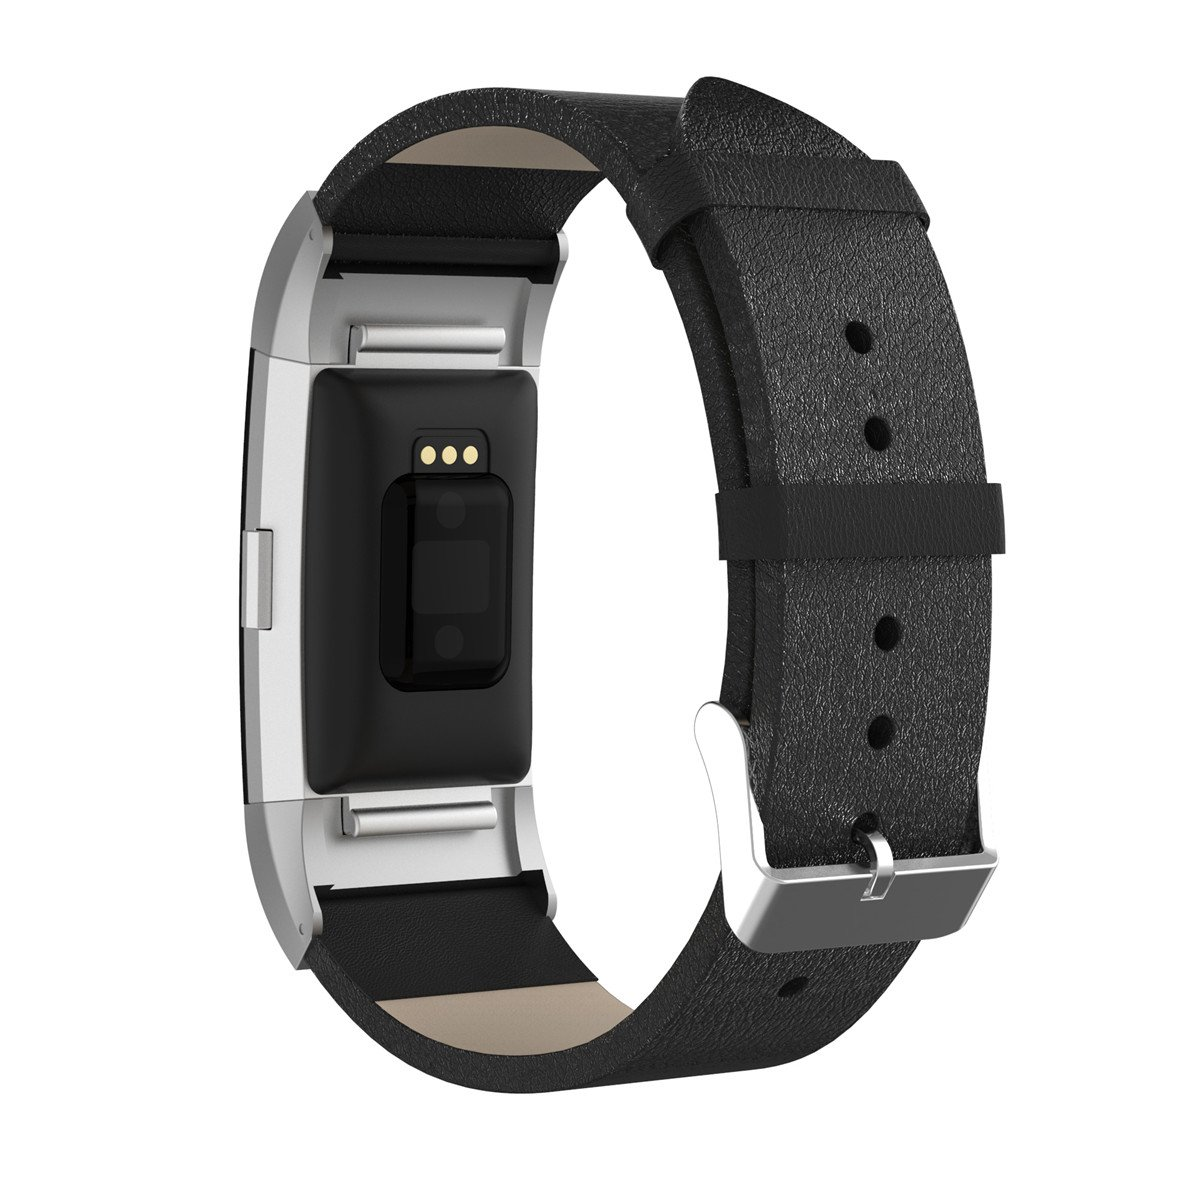 BONSTRAP For Fitbit Charge 2 Genuine Leather Watchband Replacement Accessories Bracelet Wrist Strap Adapter Black